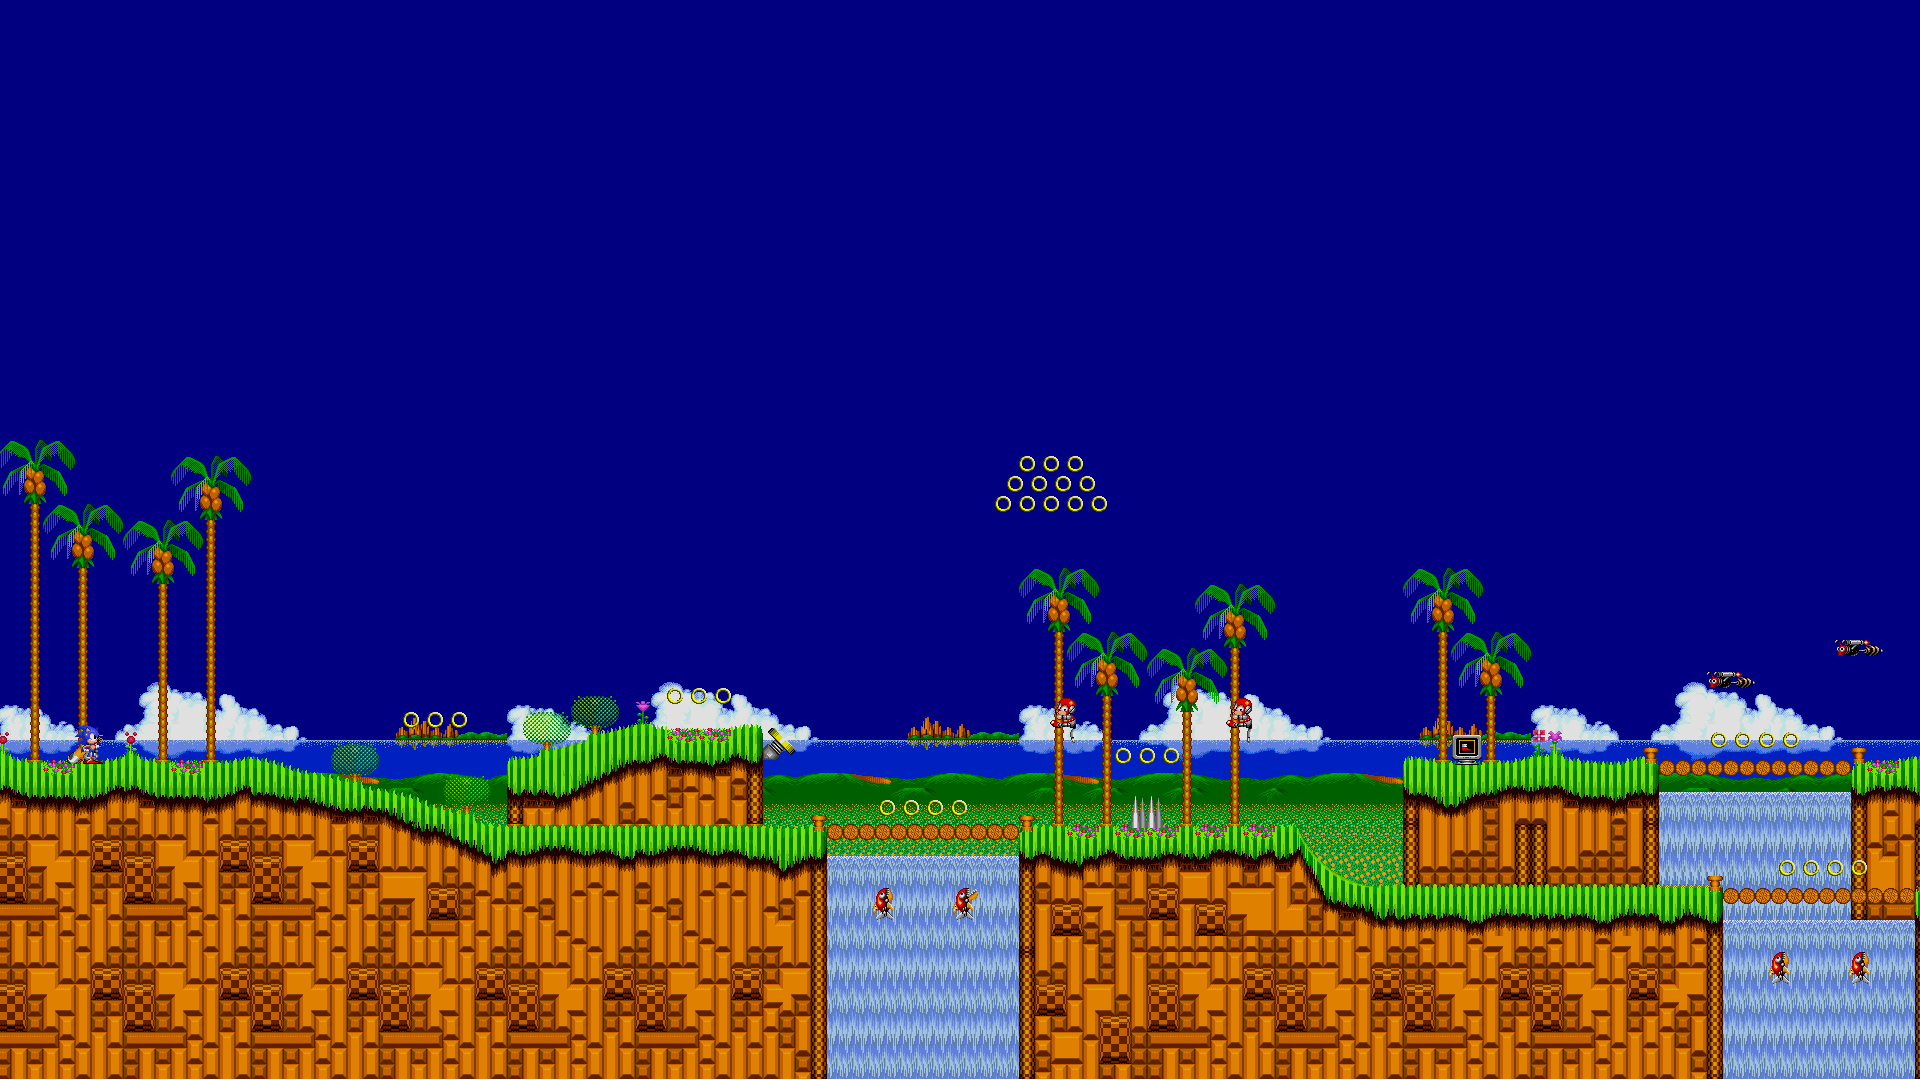 Emerald Hill Zone Hd Wallpaper Background Image 1920x1080 Id 929519 Wallpaper Abyss